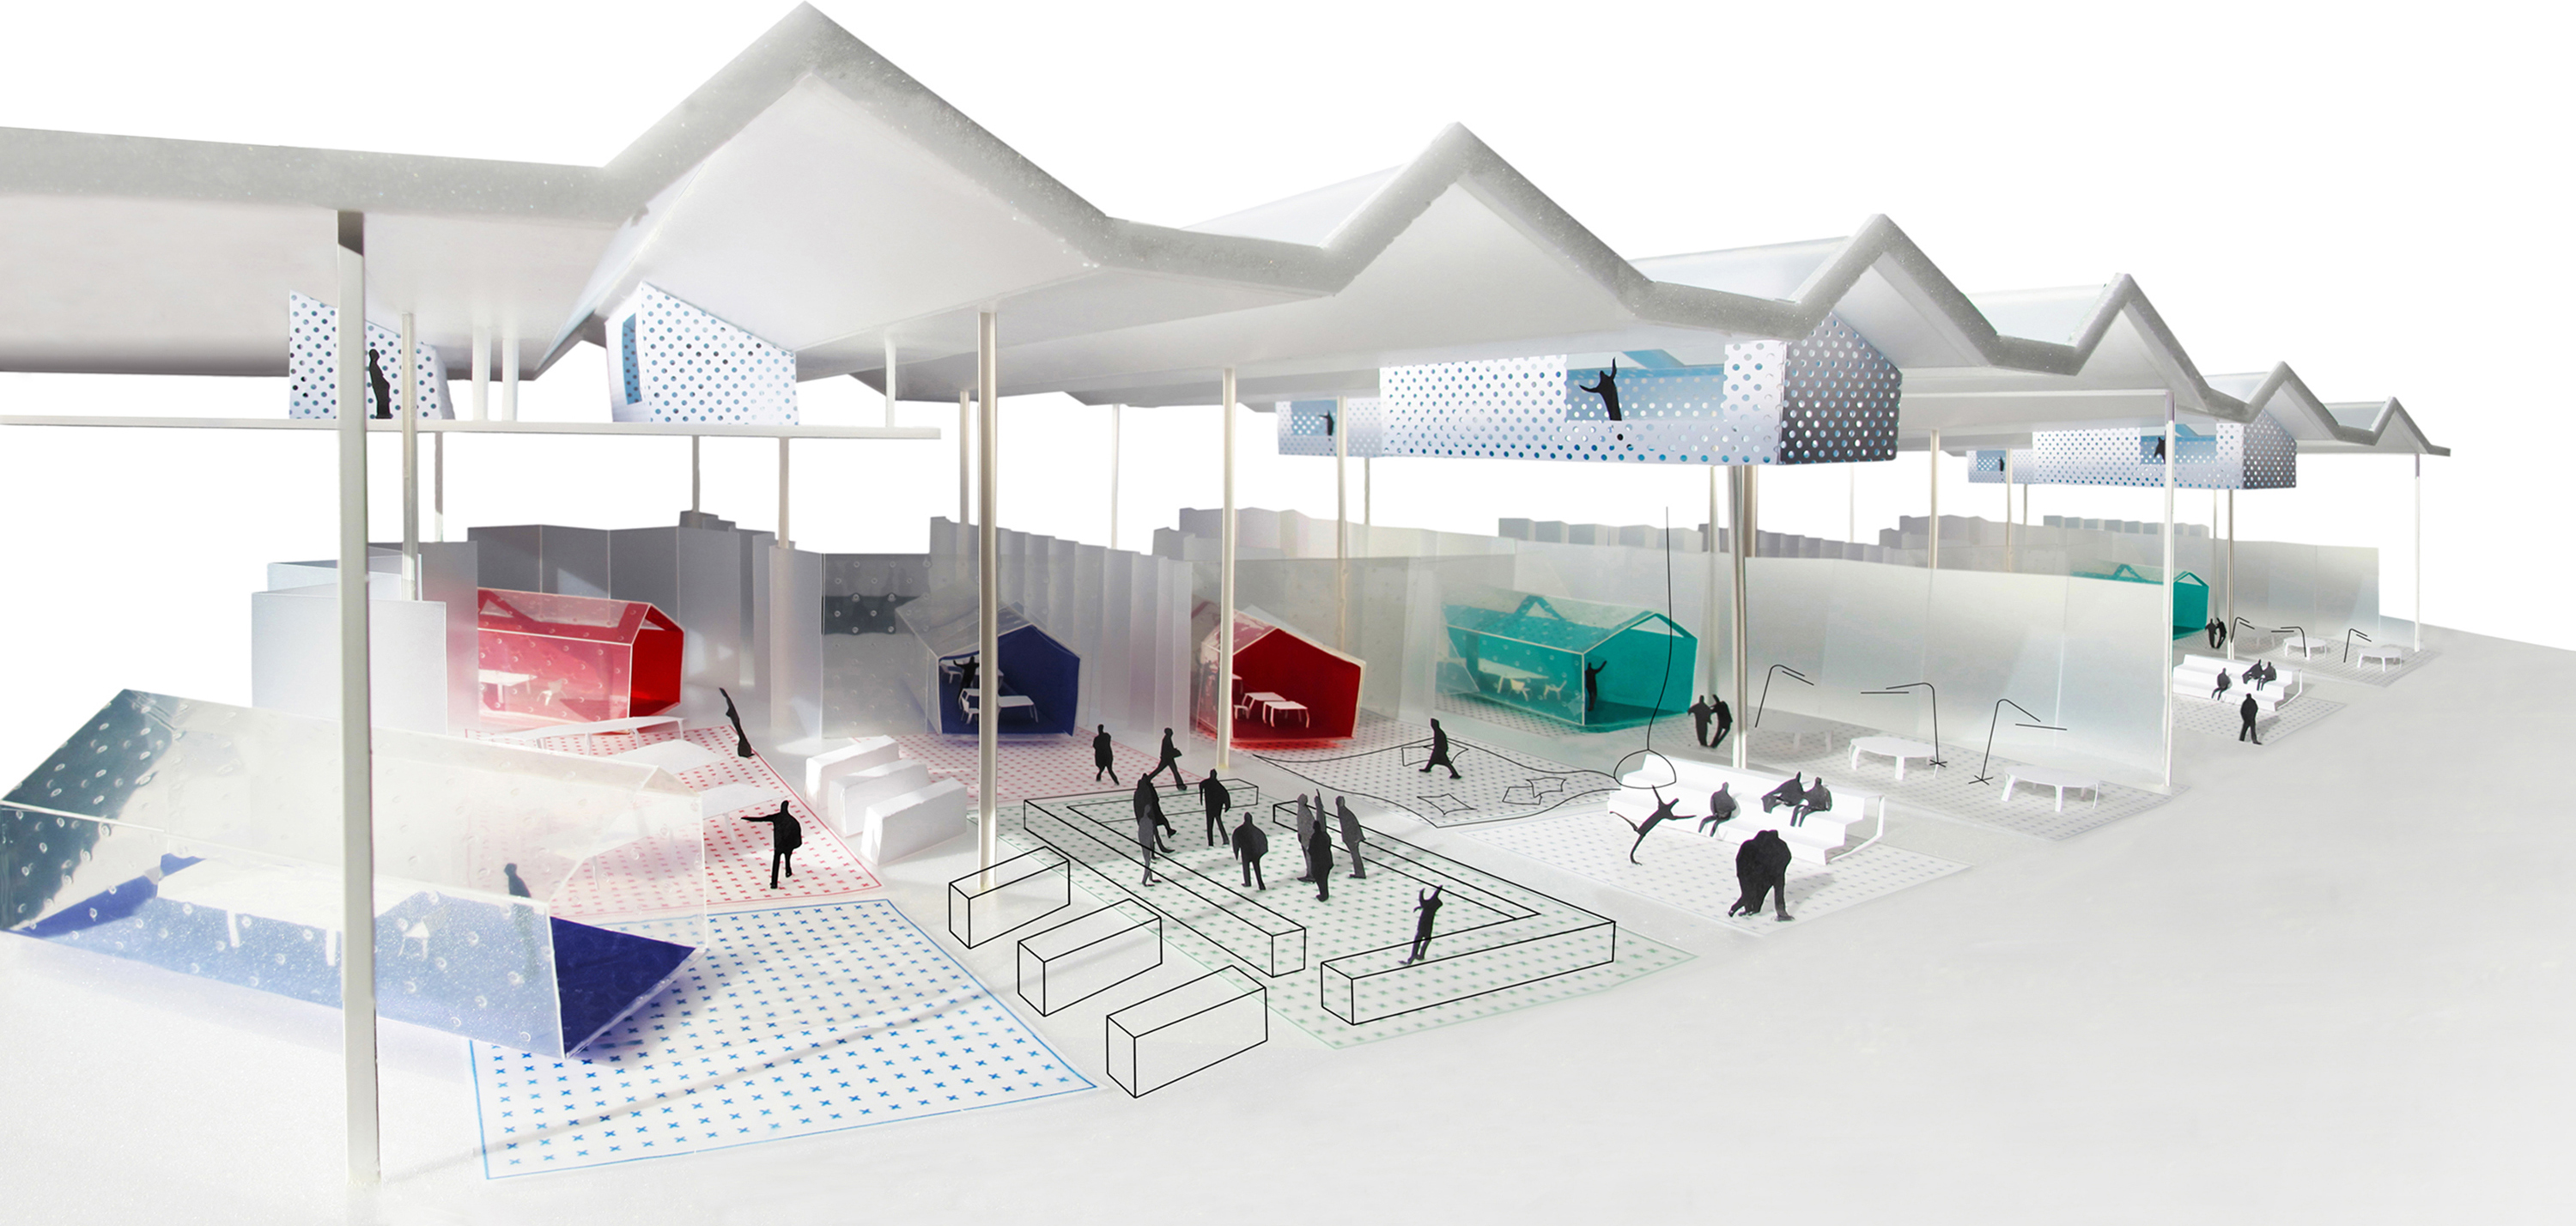 KUNE | Architecture Office / Spaces of Togetherness